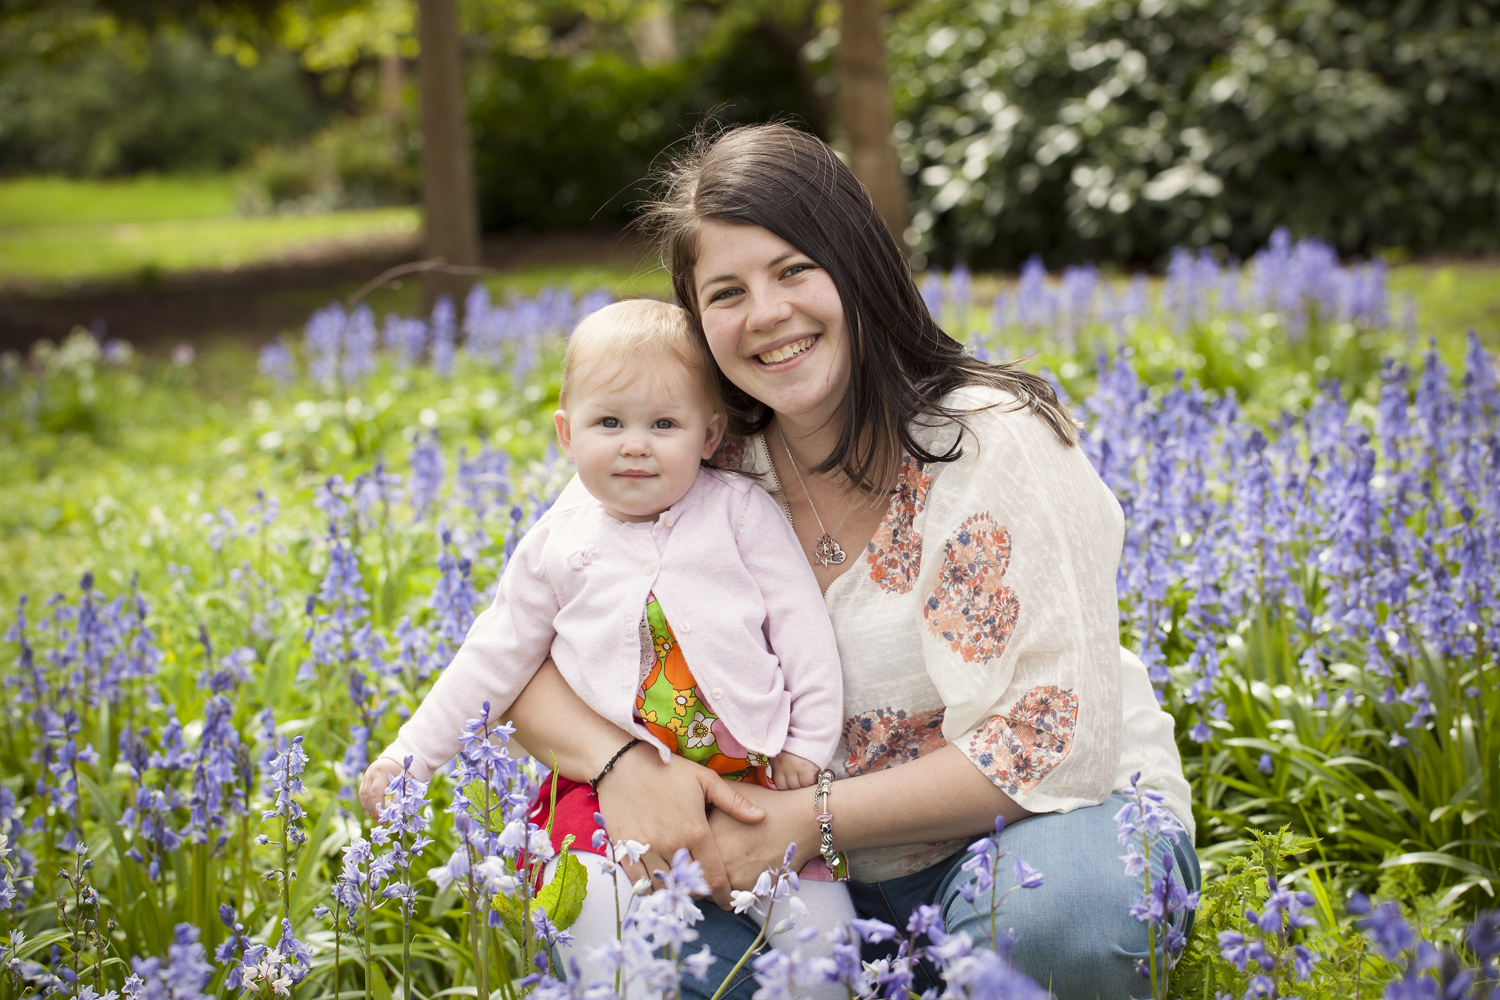 family portraits family outdoor photography bournemouth dorset 4.jpg